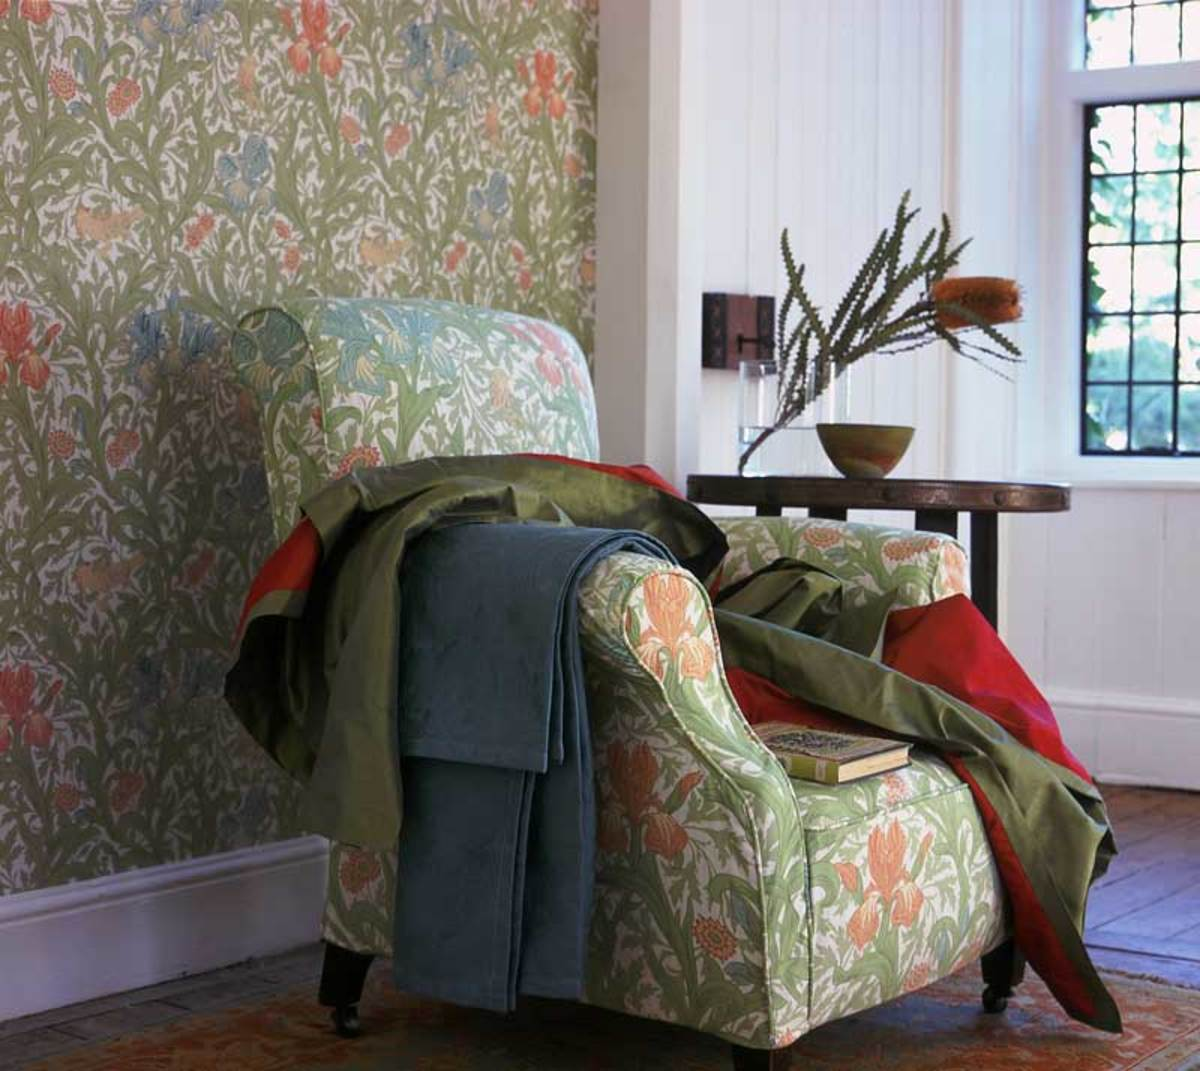 'Iris' fabric and wallpaper